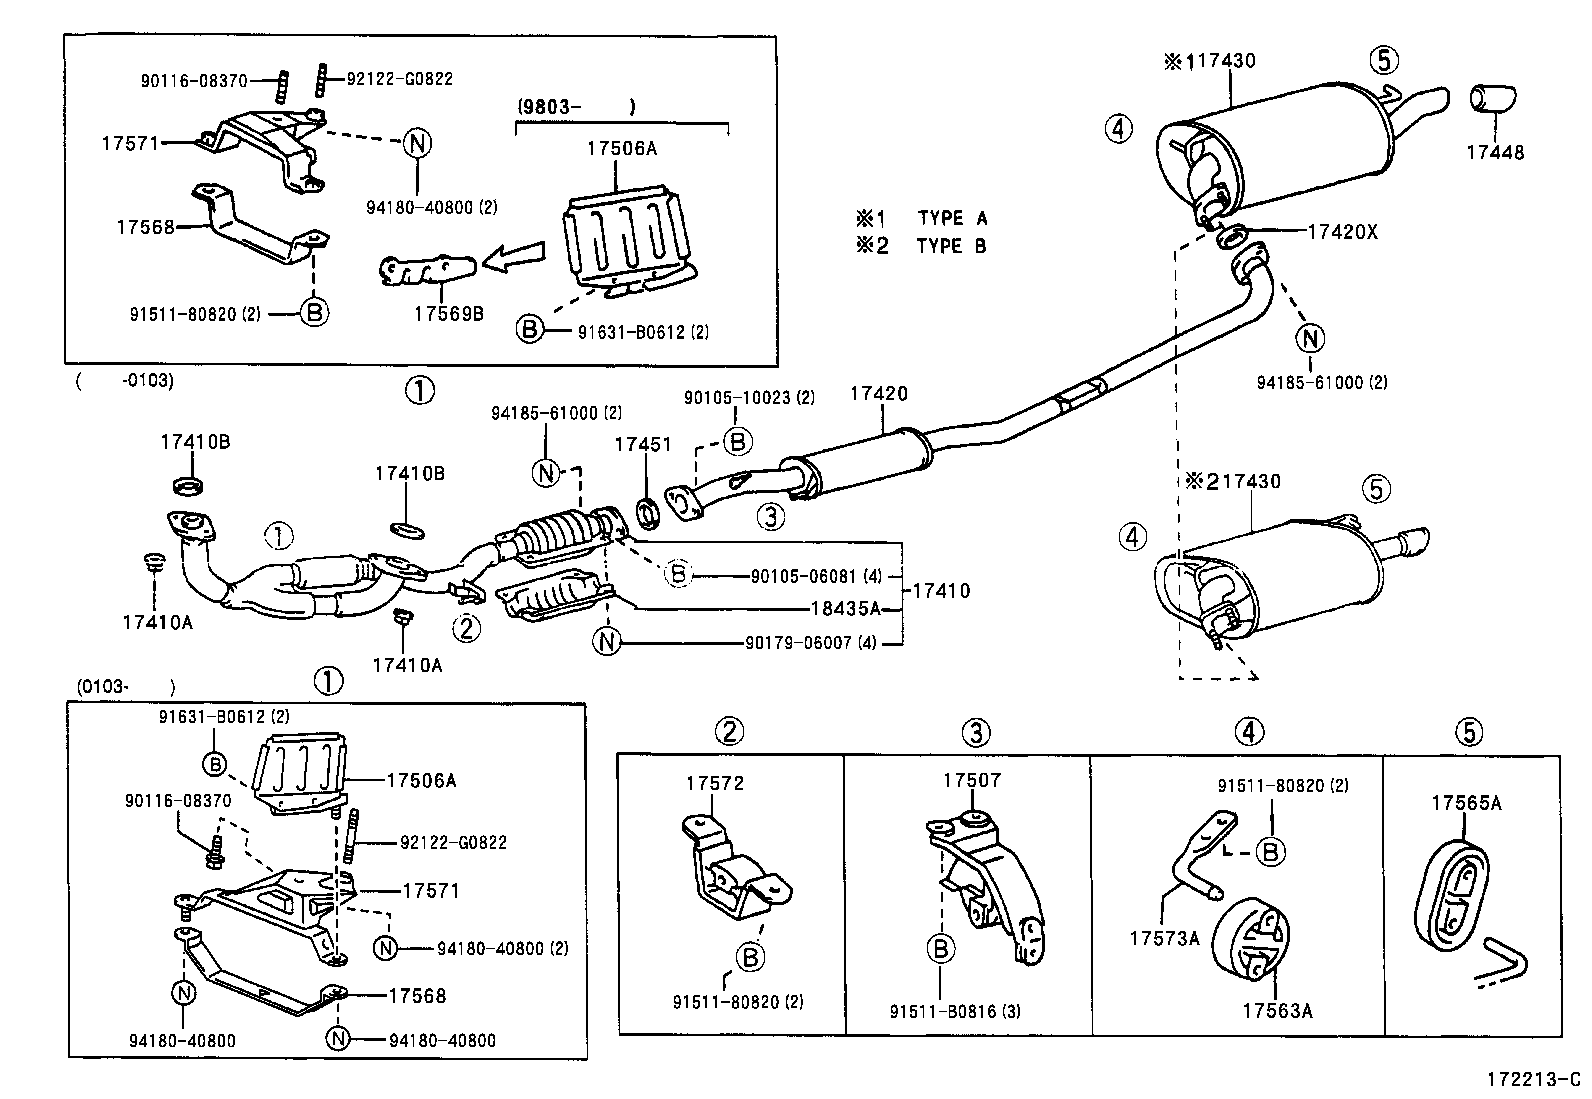 2000 Toyota Camry Exhaust System Diagram